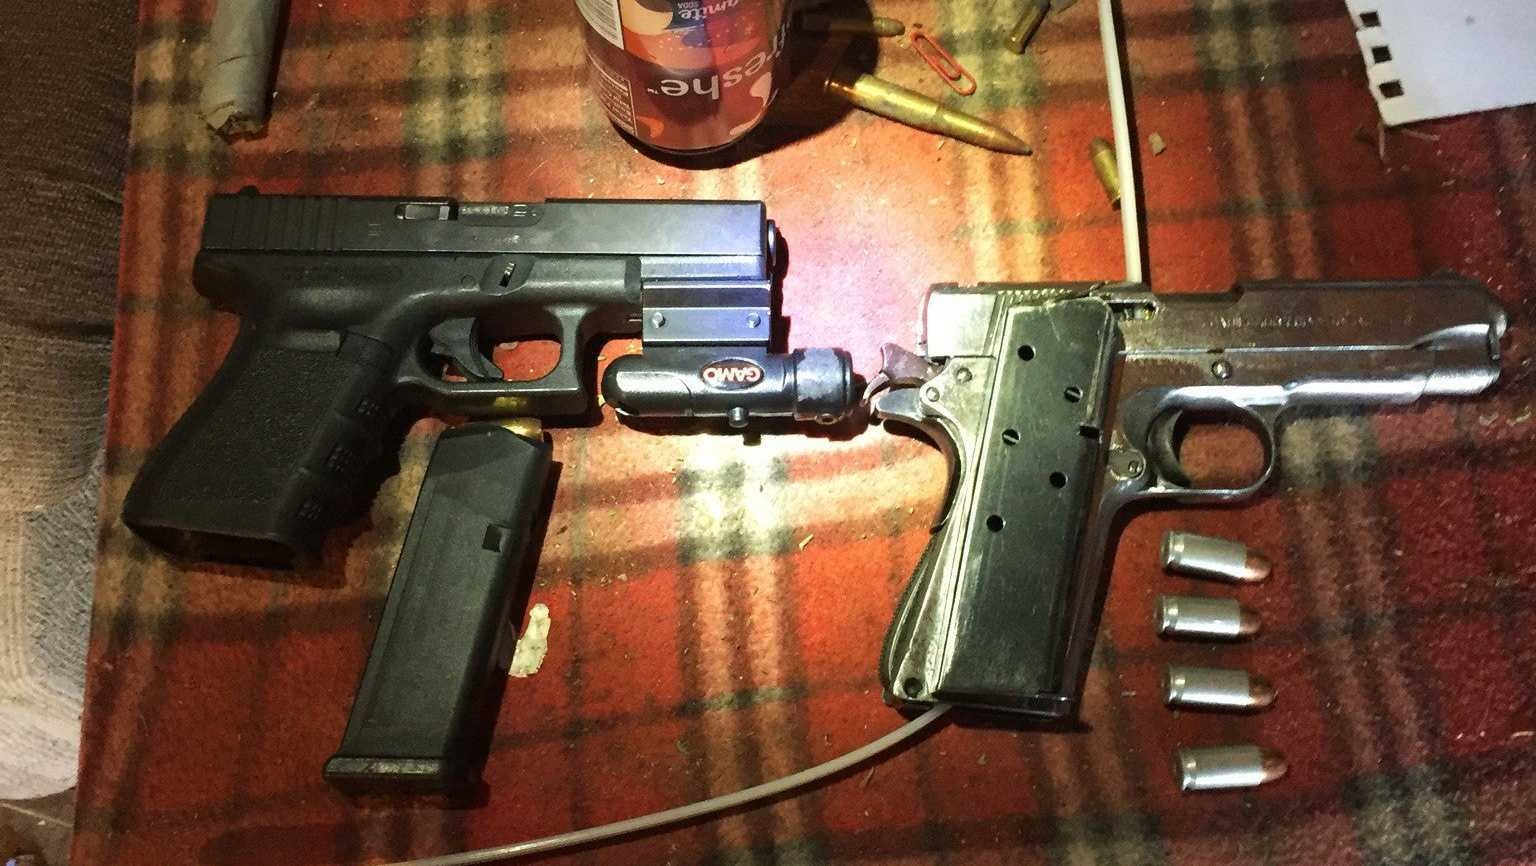 Guns seized in King City